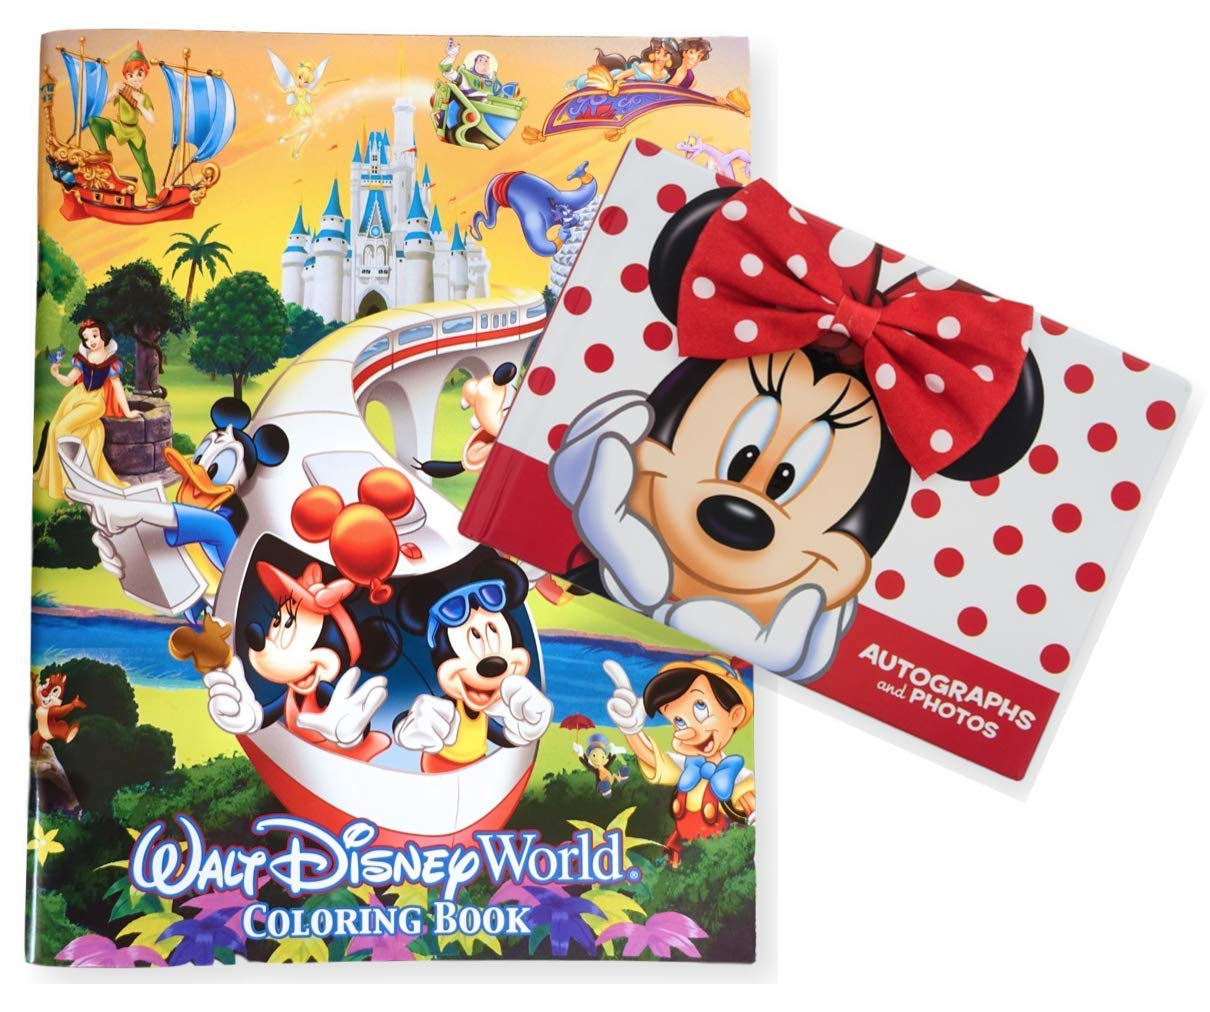 DisneyParks Minnie Mouse Autograph and Photo Book Plus and 96 Page Coloring Book